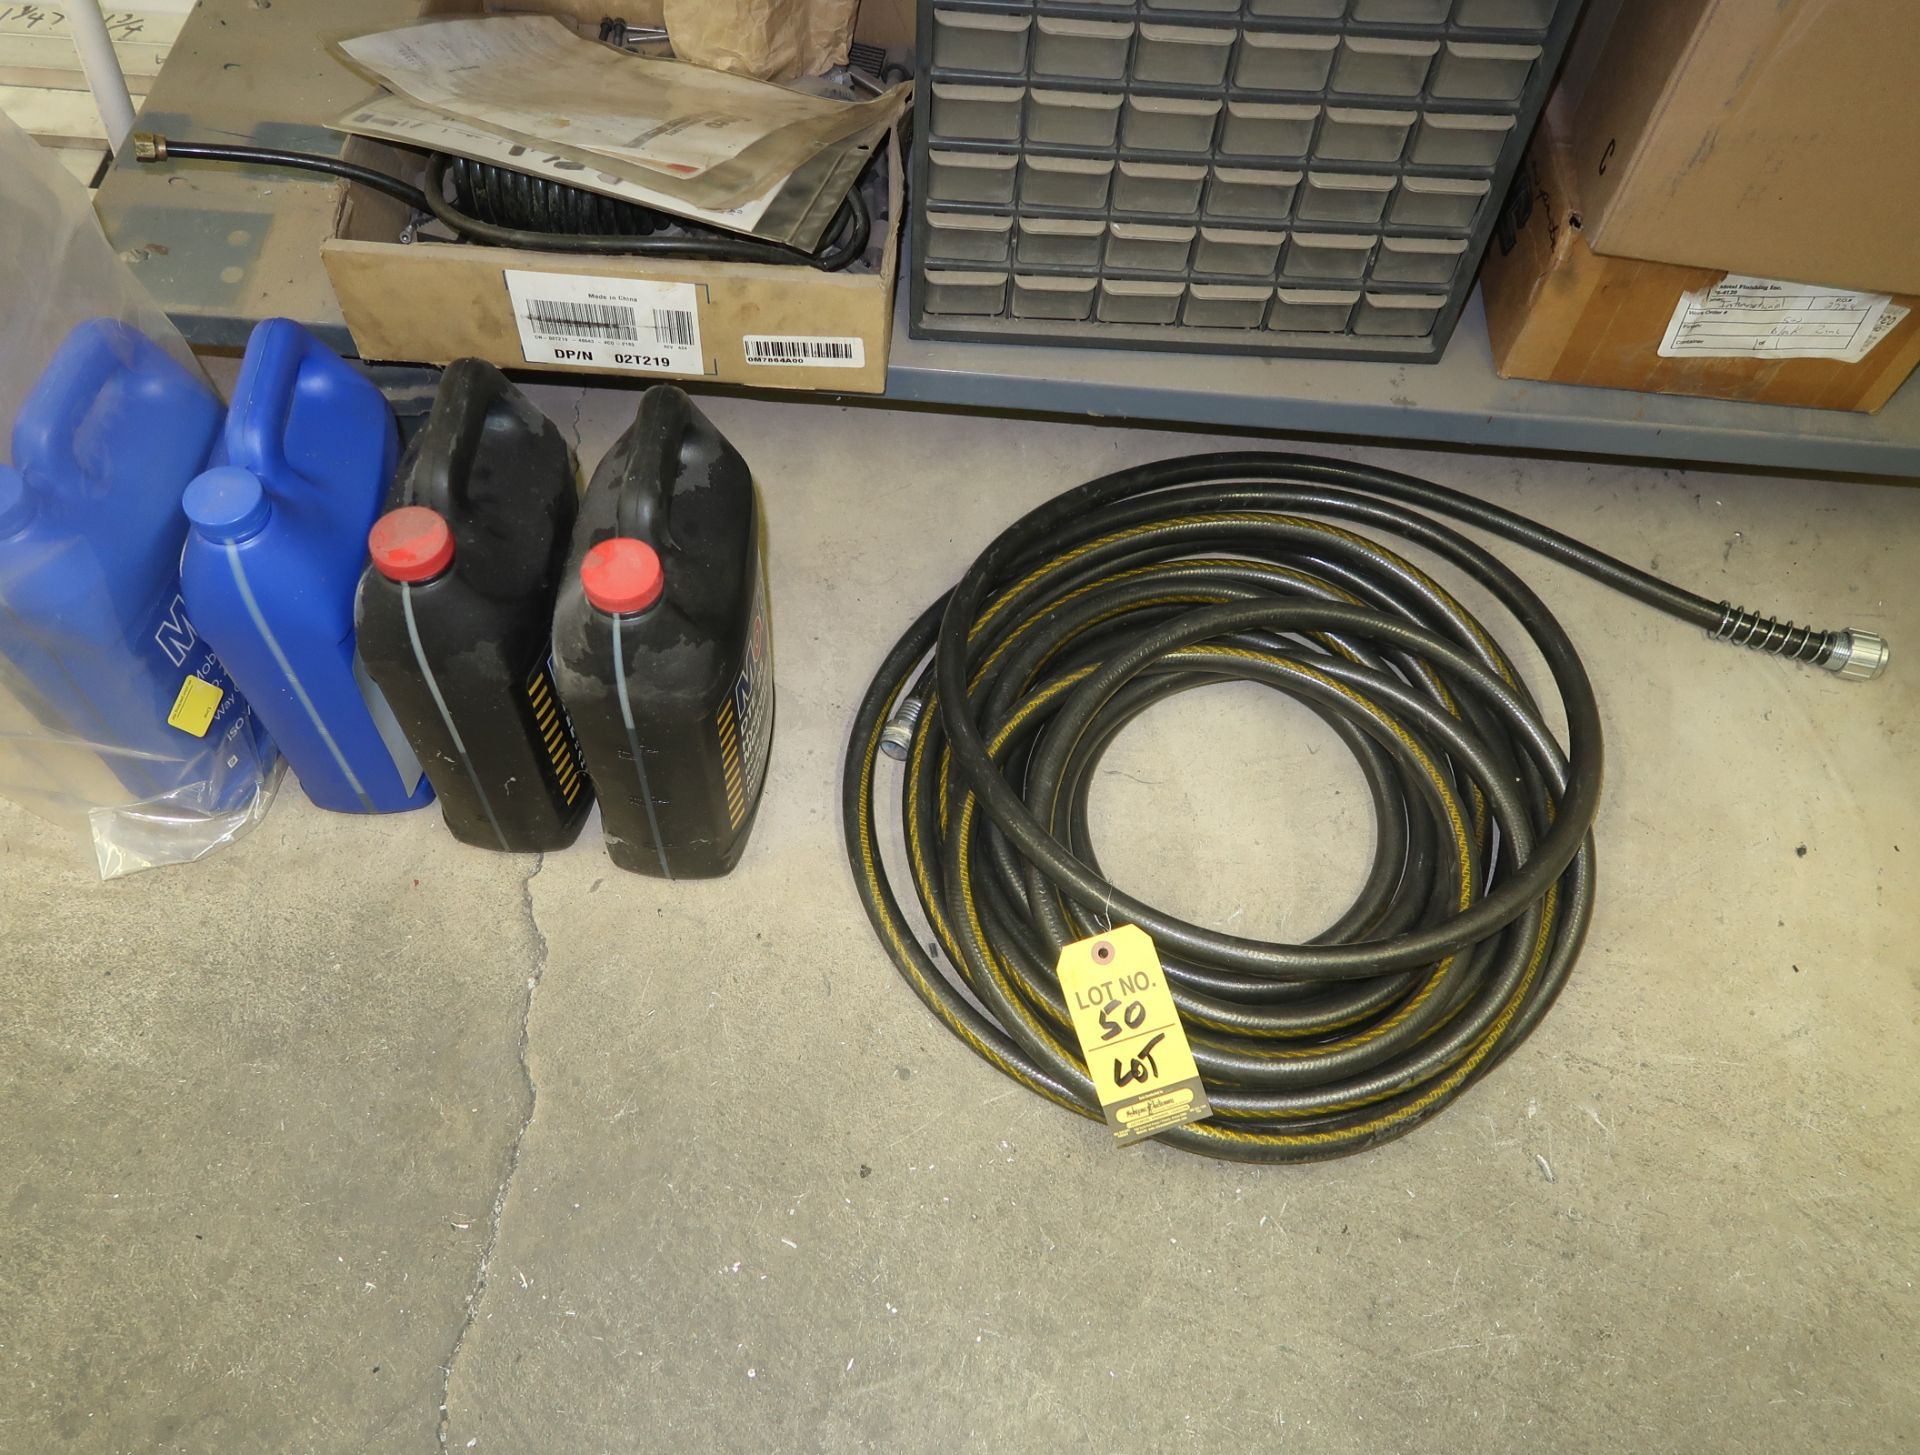 Lot 50 - LOT HOSE, NUT & BOLT BIN, ETC. UNDER SHOP TABLE